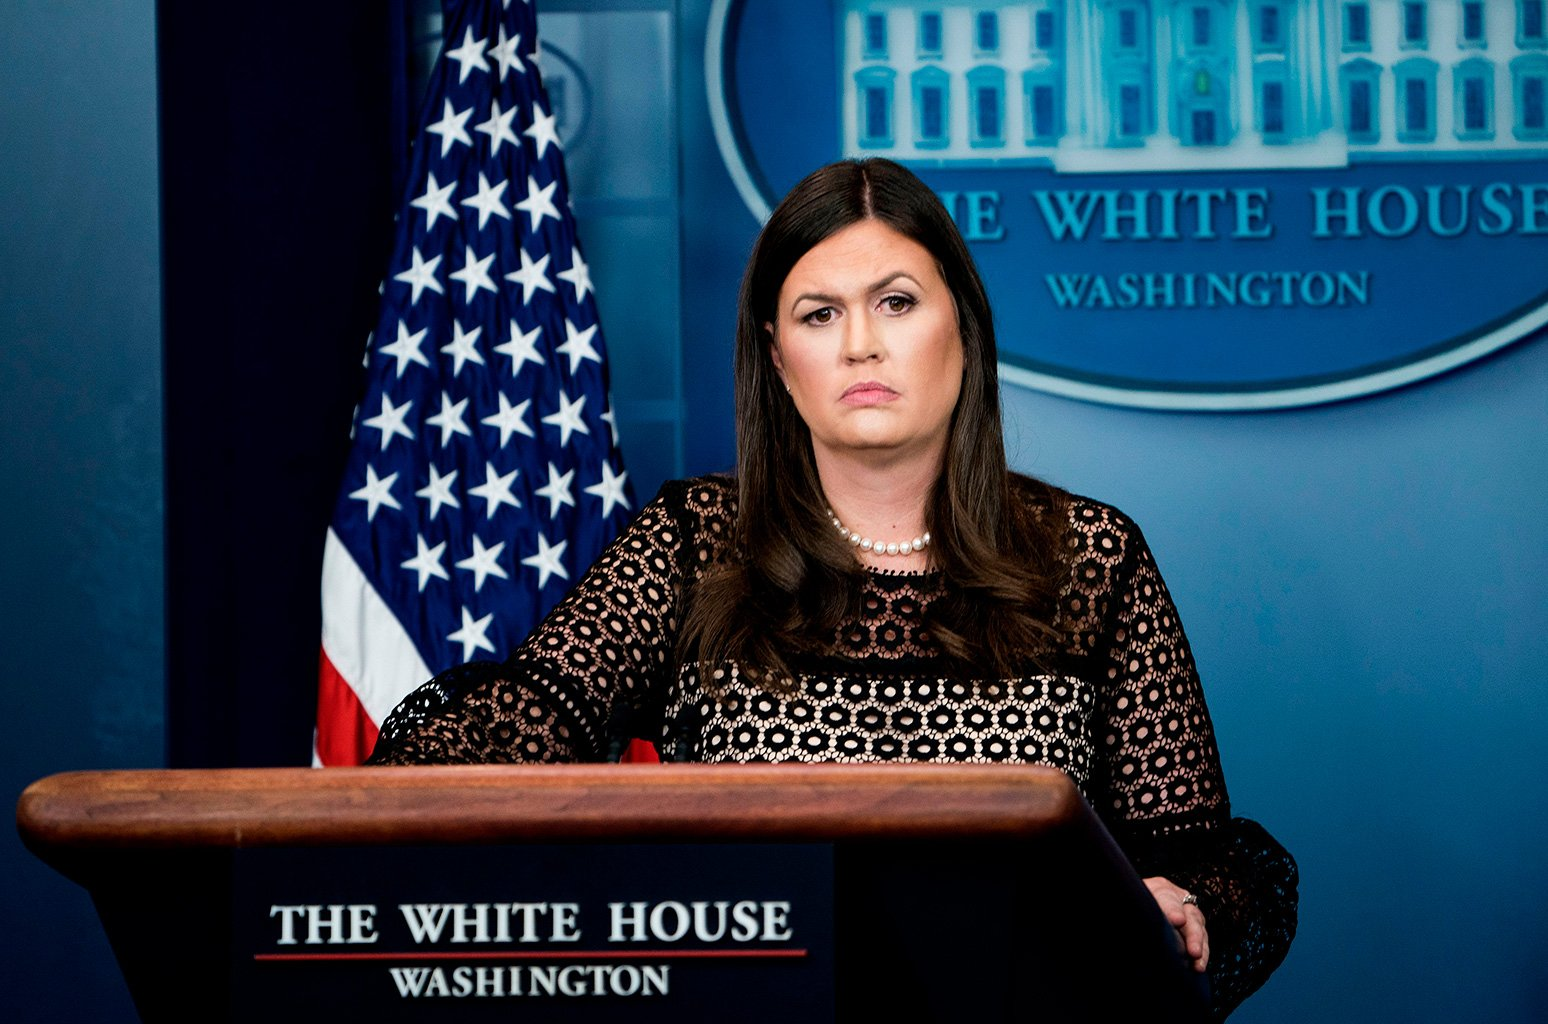 Press Secretary Talks Russian Presidential Election Says US Cant Dictate Other Countries VIDEO